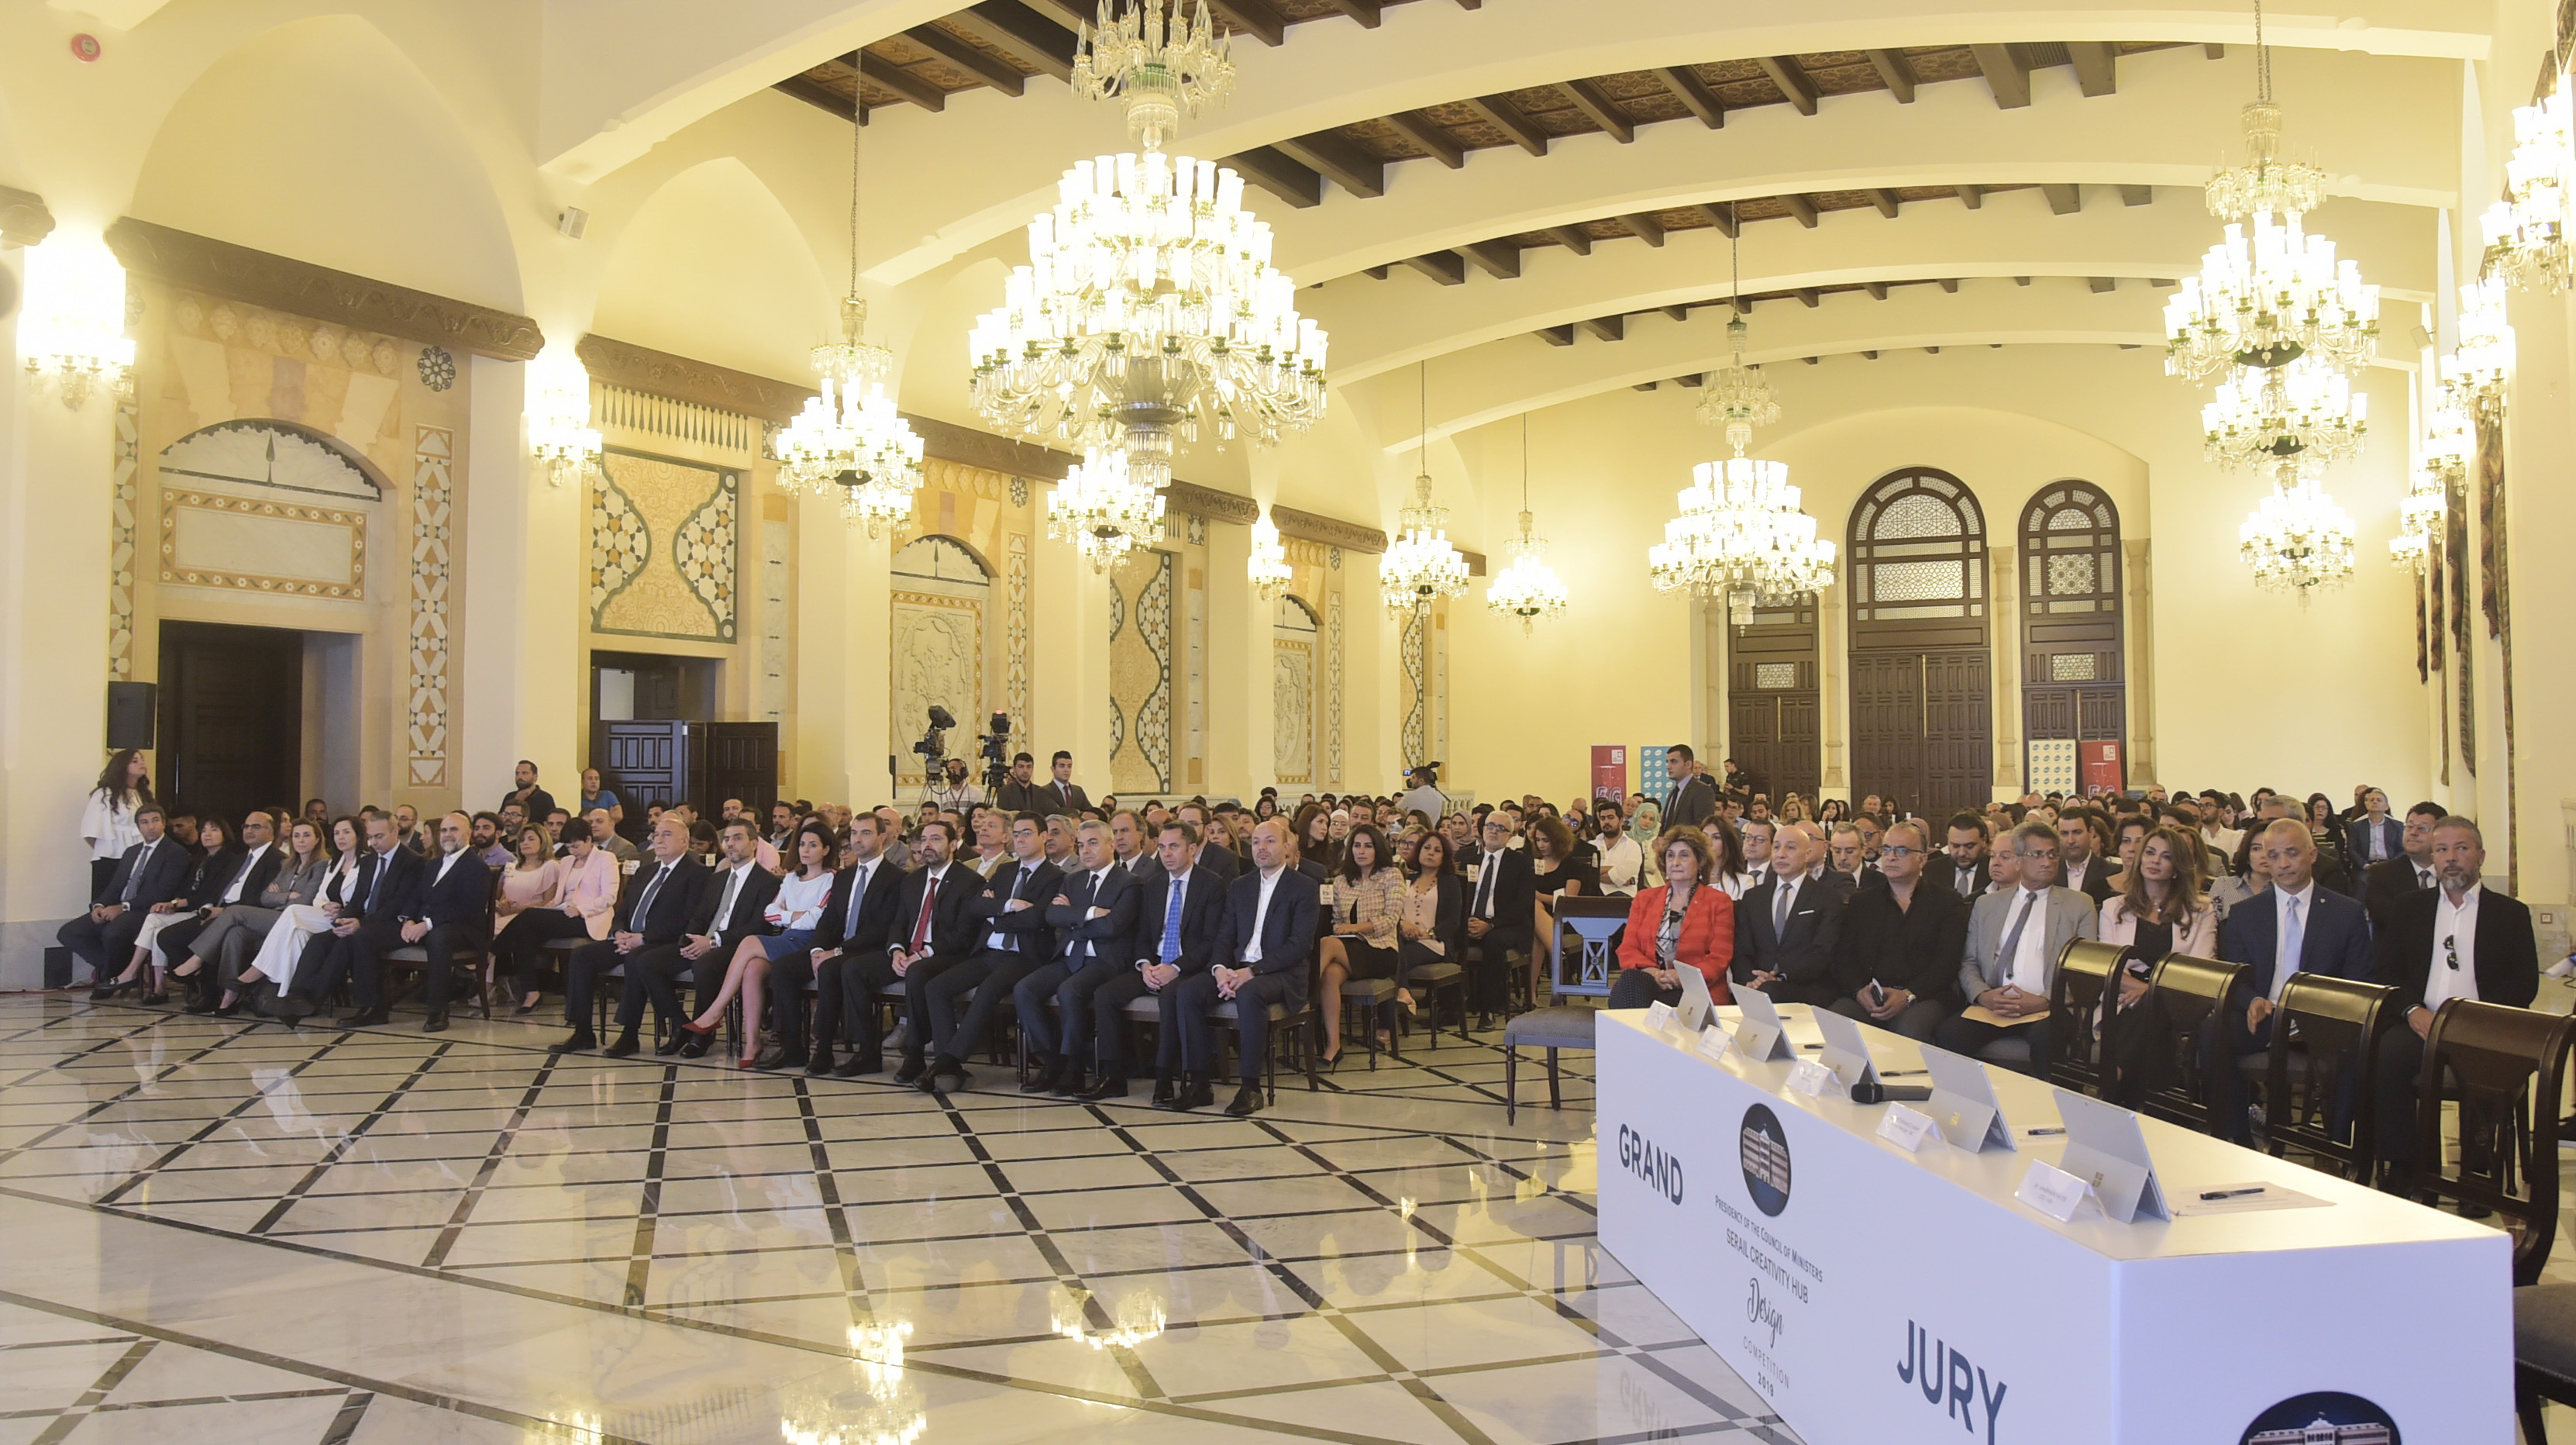 Pr Minister Saad Hariri Attends a Tournement at the Grand Serail 6